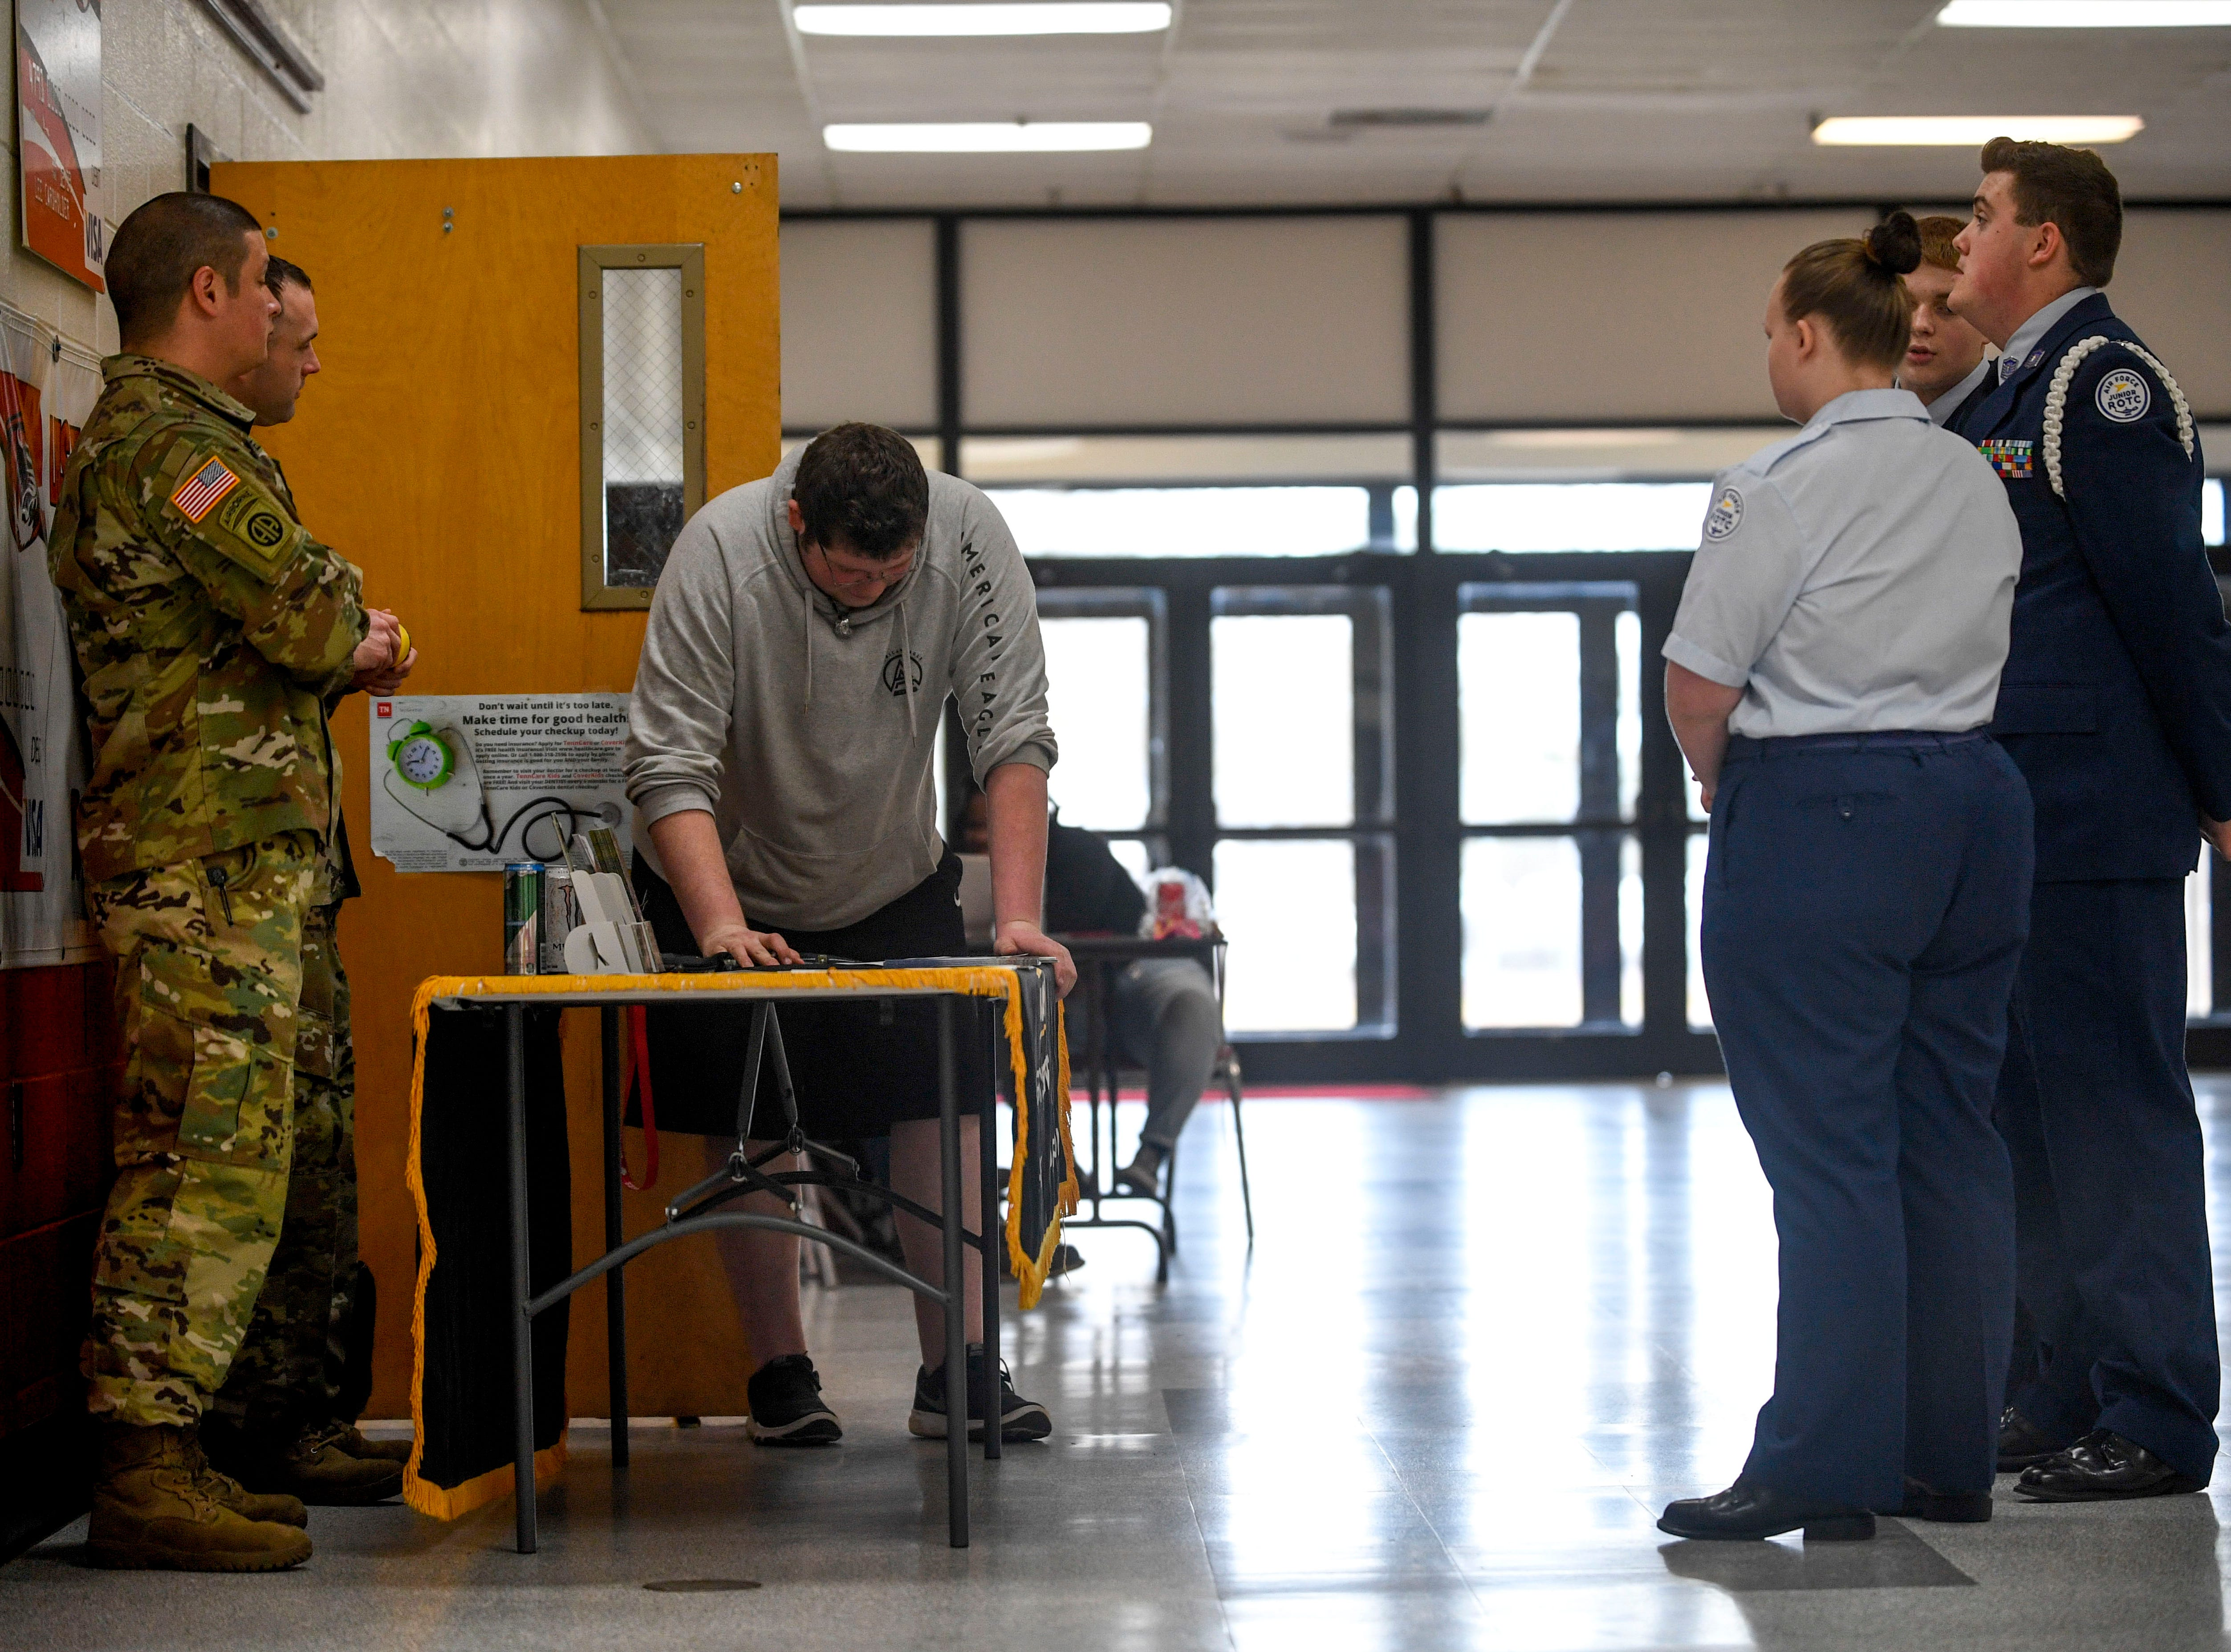 ROTC students speak with Army recruiters SSG Sheldon and SSG Moss during ROTC class at Lexington High School in Lexington, Tenn., on Wednesday, Feb. 6, 2019.